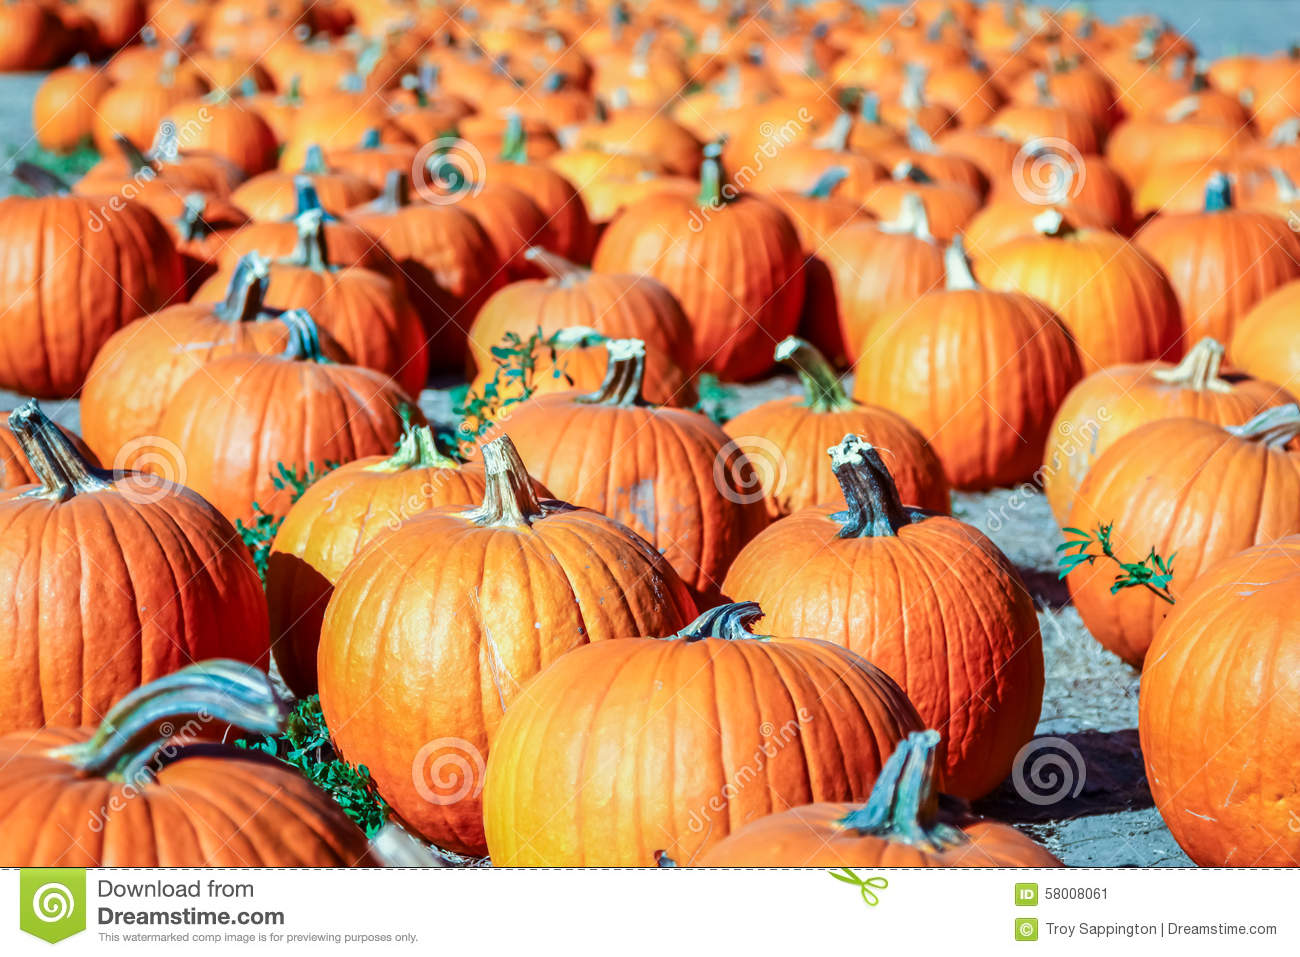 Vegetable Garden In Fall Wallpaper Colorful Orange Pumpkins In A Pumpkin Patch Ready For